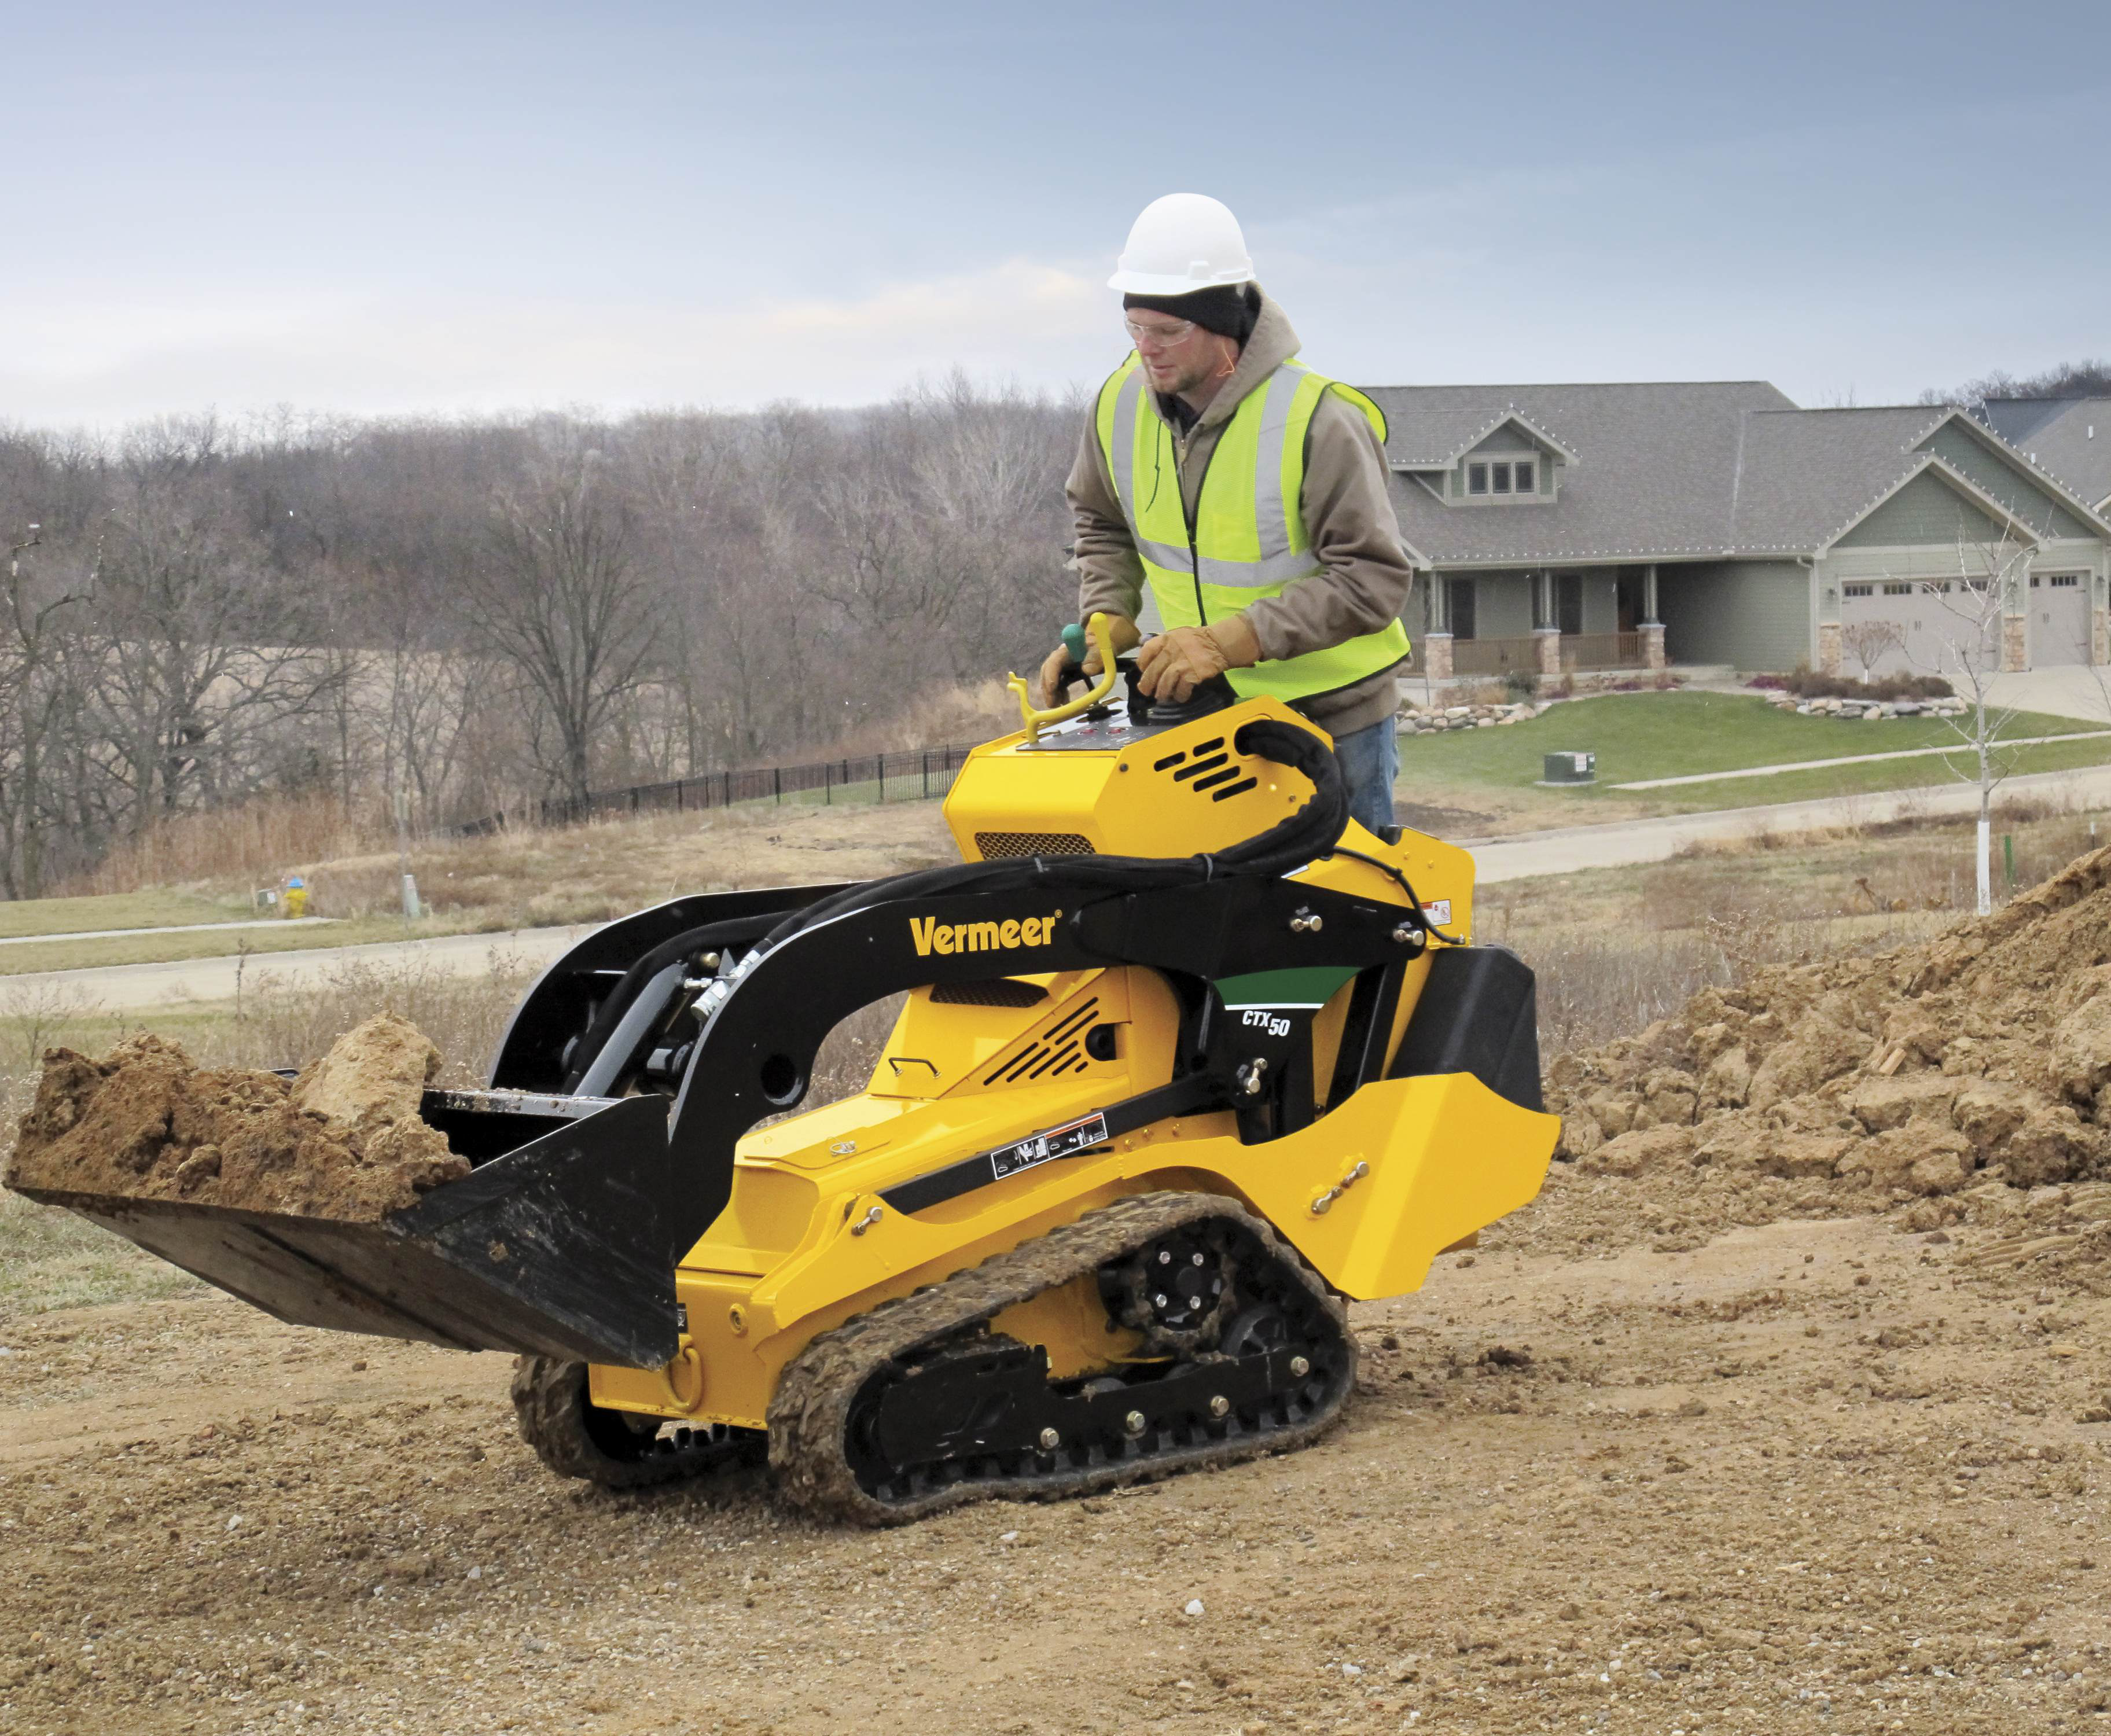 Mini Skid Steer : Vermeer unveils ctx mini skid steer designed for renters